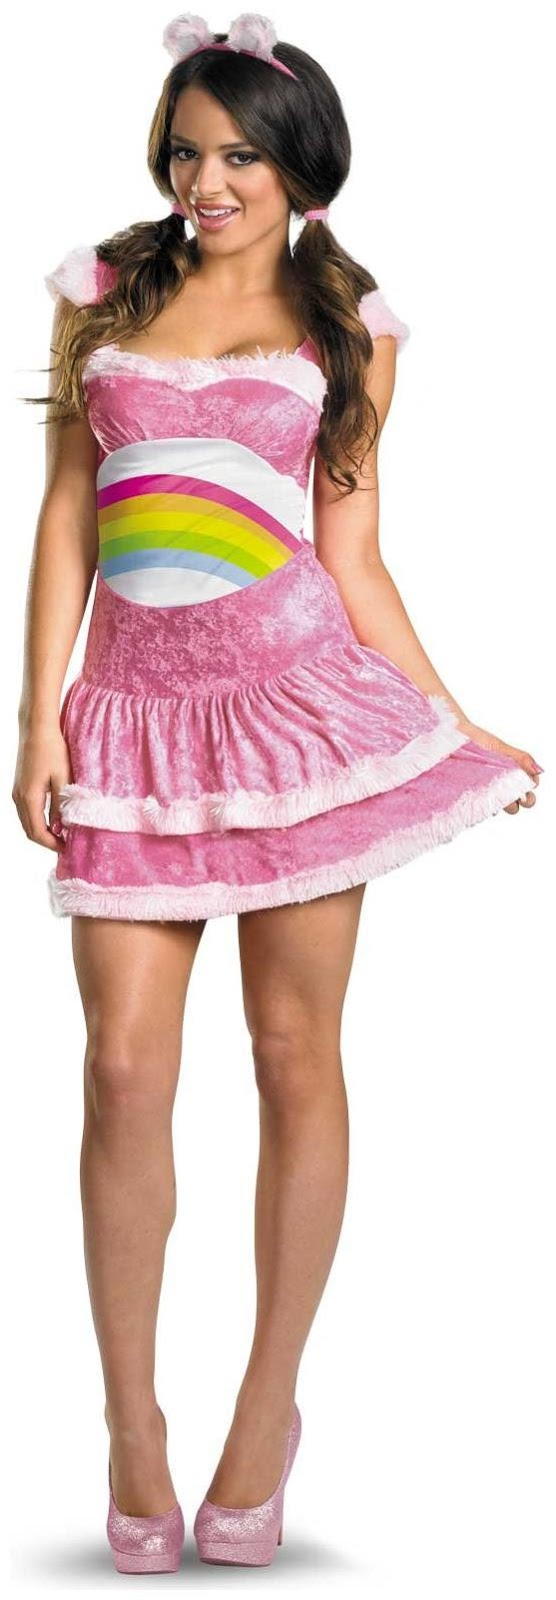 role play costumes for sex cheerleader in Oxfordshire